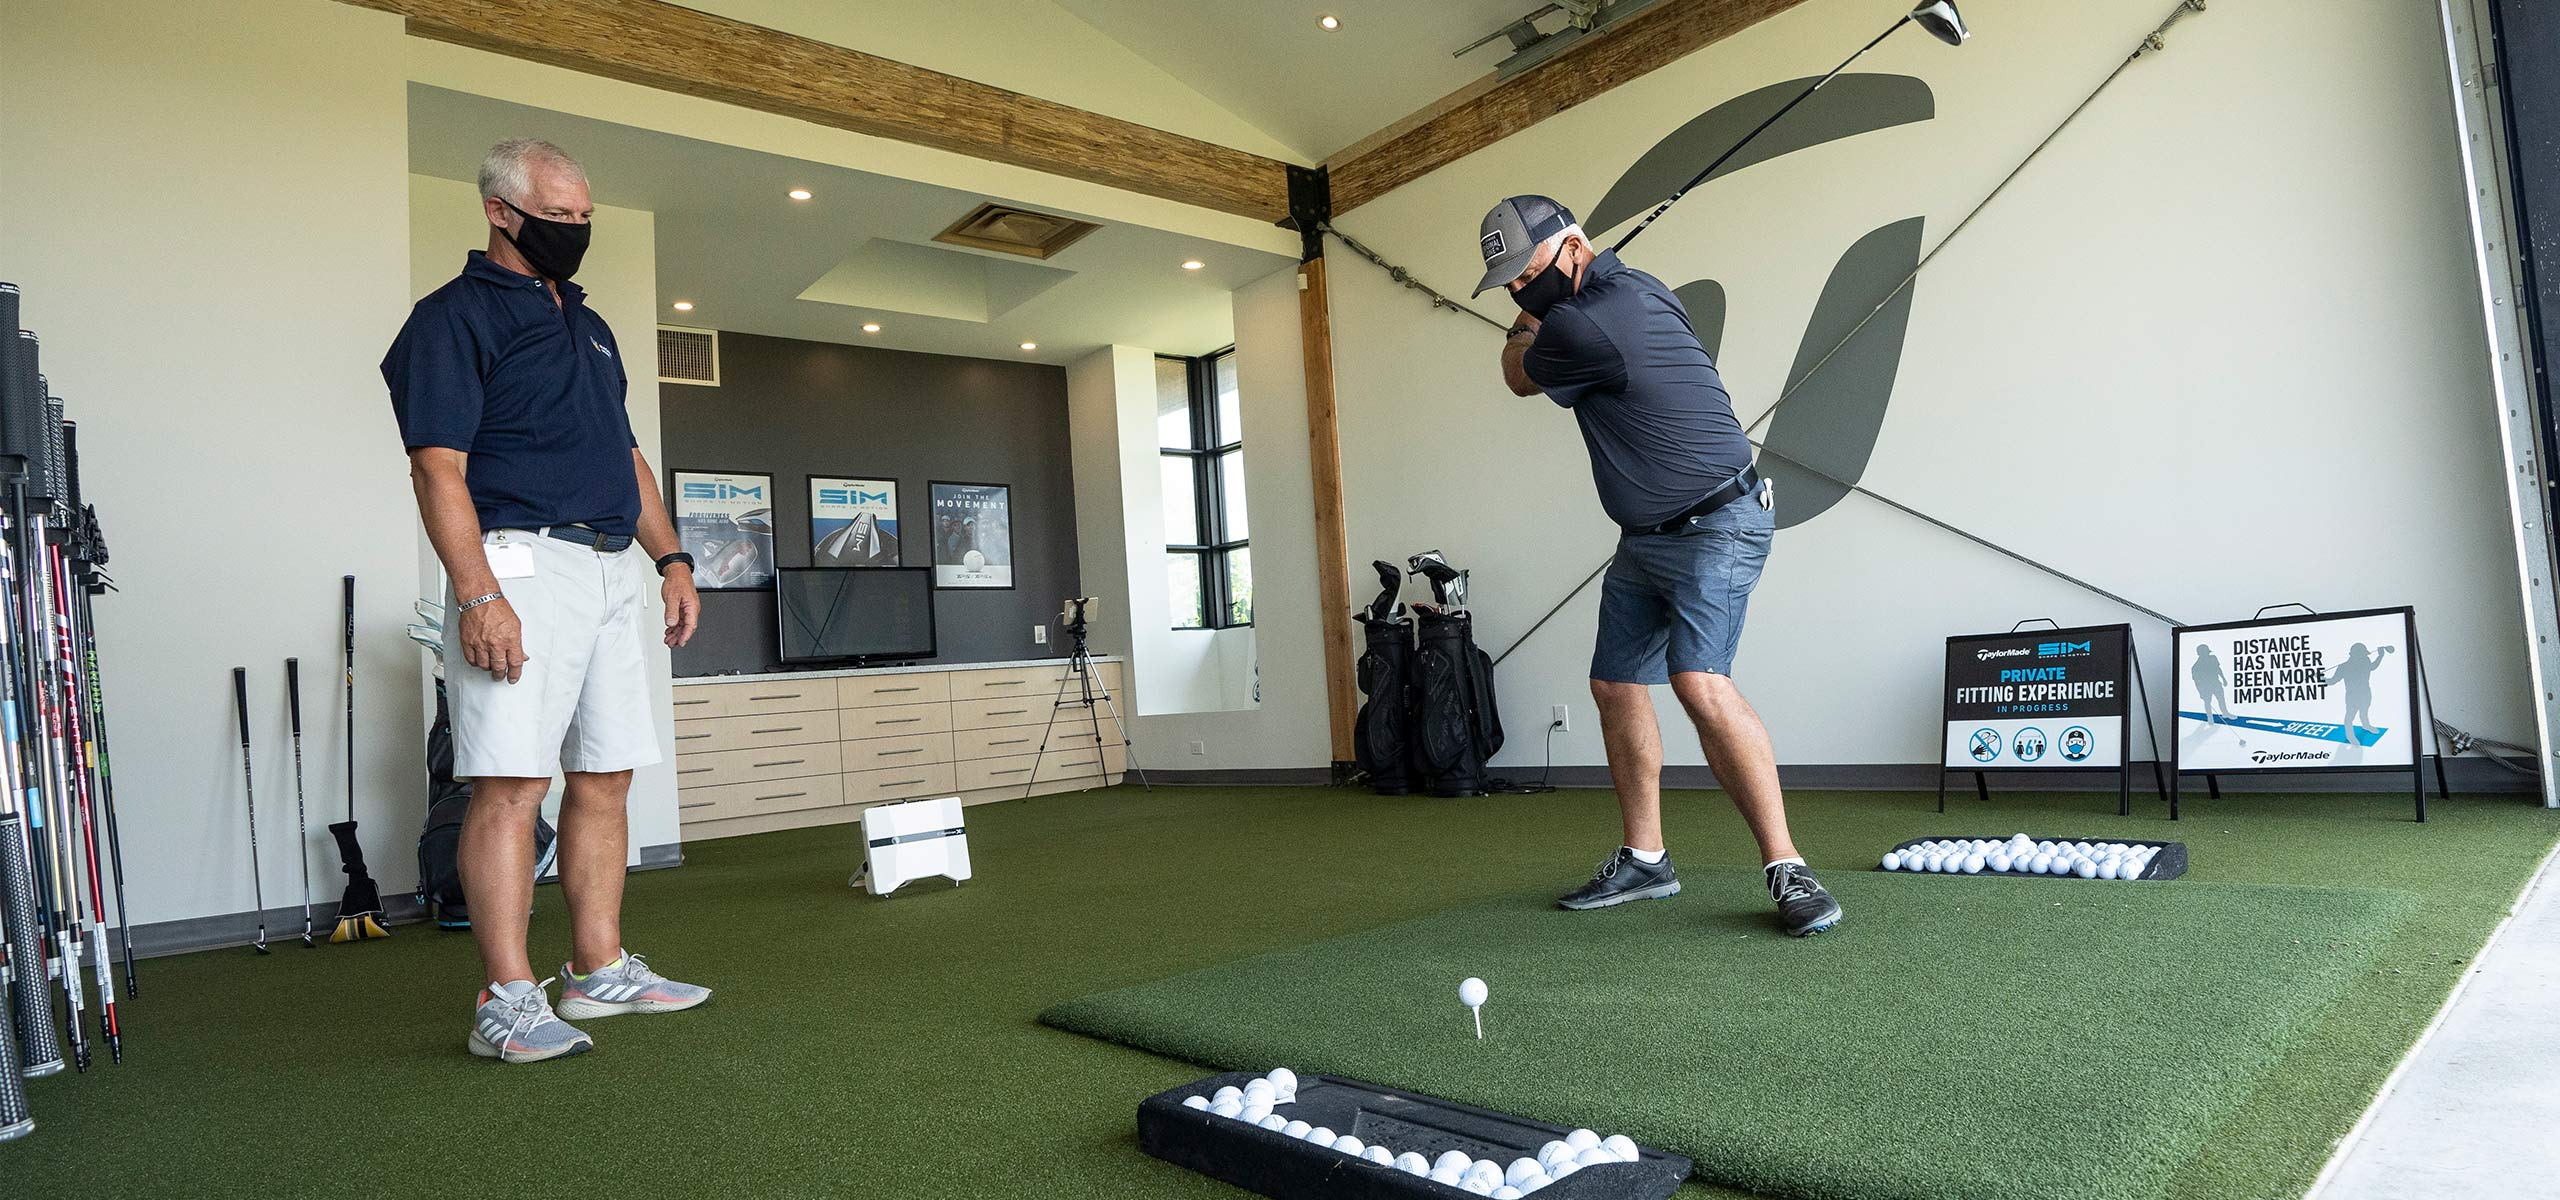 Niagara Parks Announces New TaylorMade Performance Centre at Legends on the Niagara Golf Course